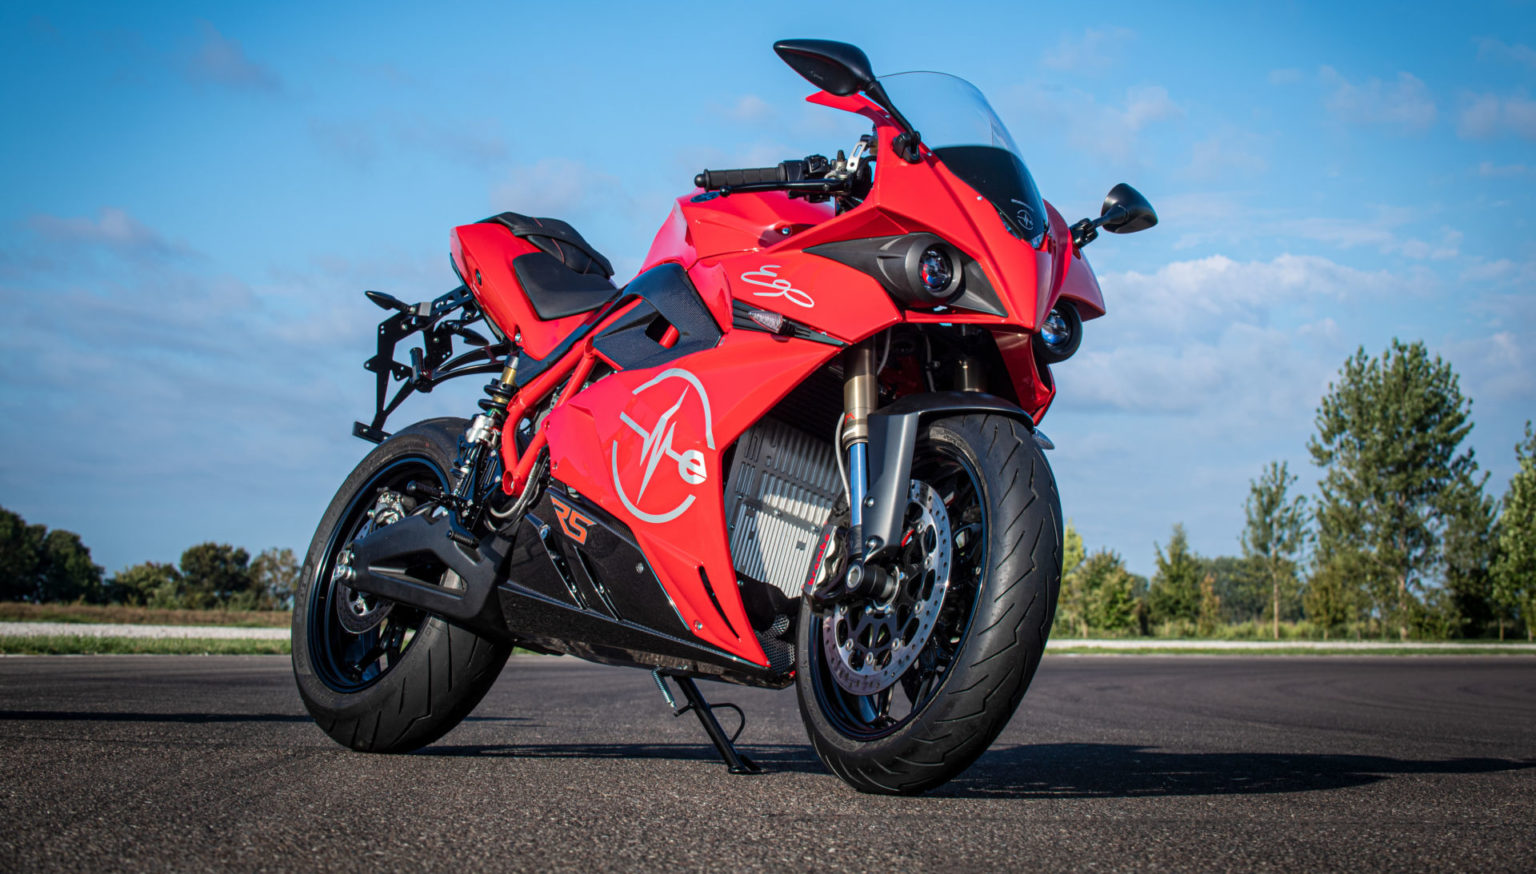 Energica Working On Rider-to-Motorcycle Voice Communication